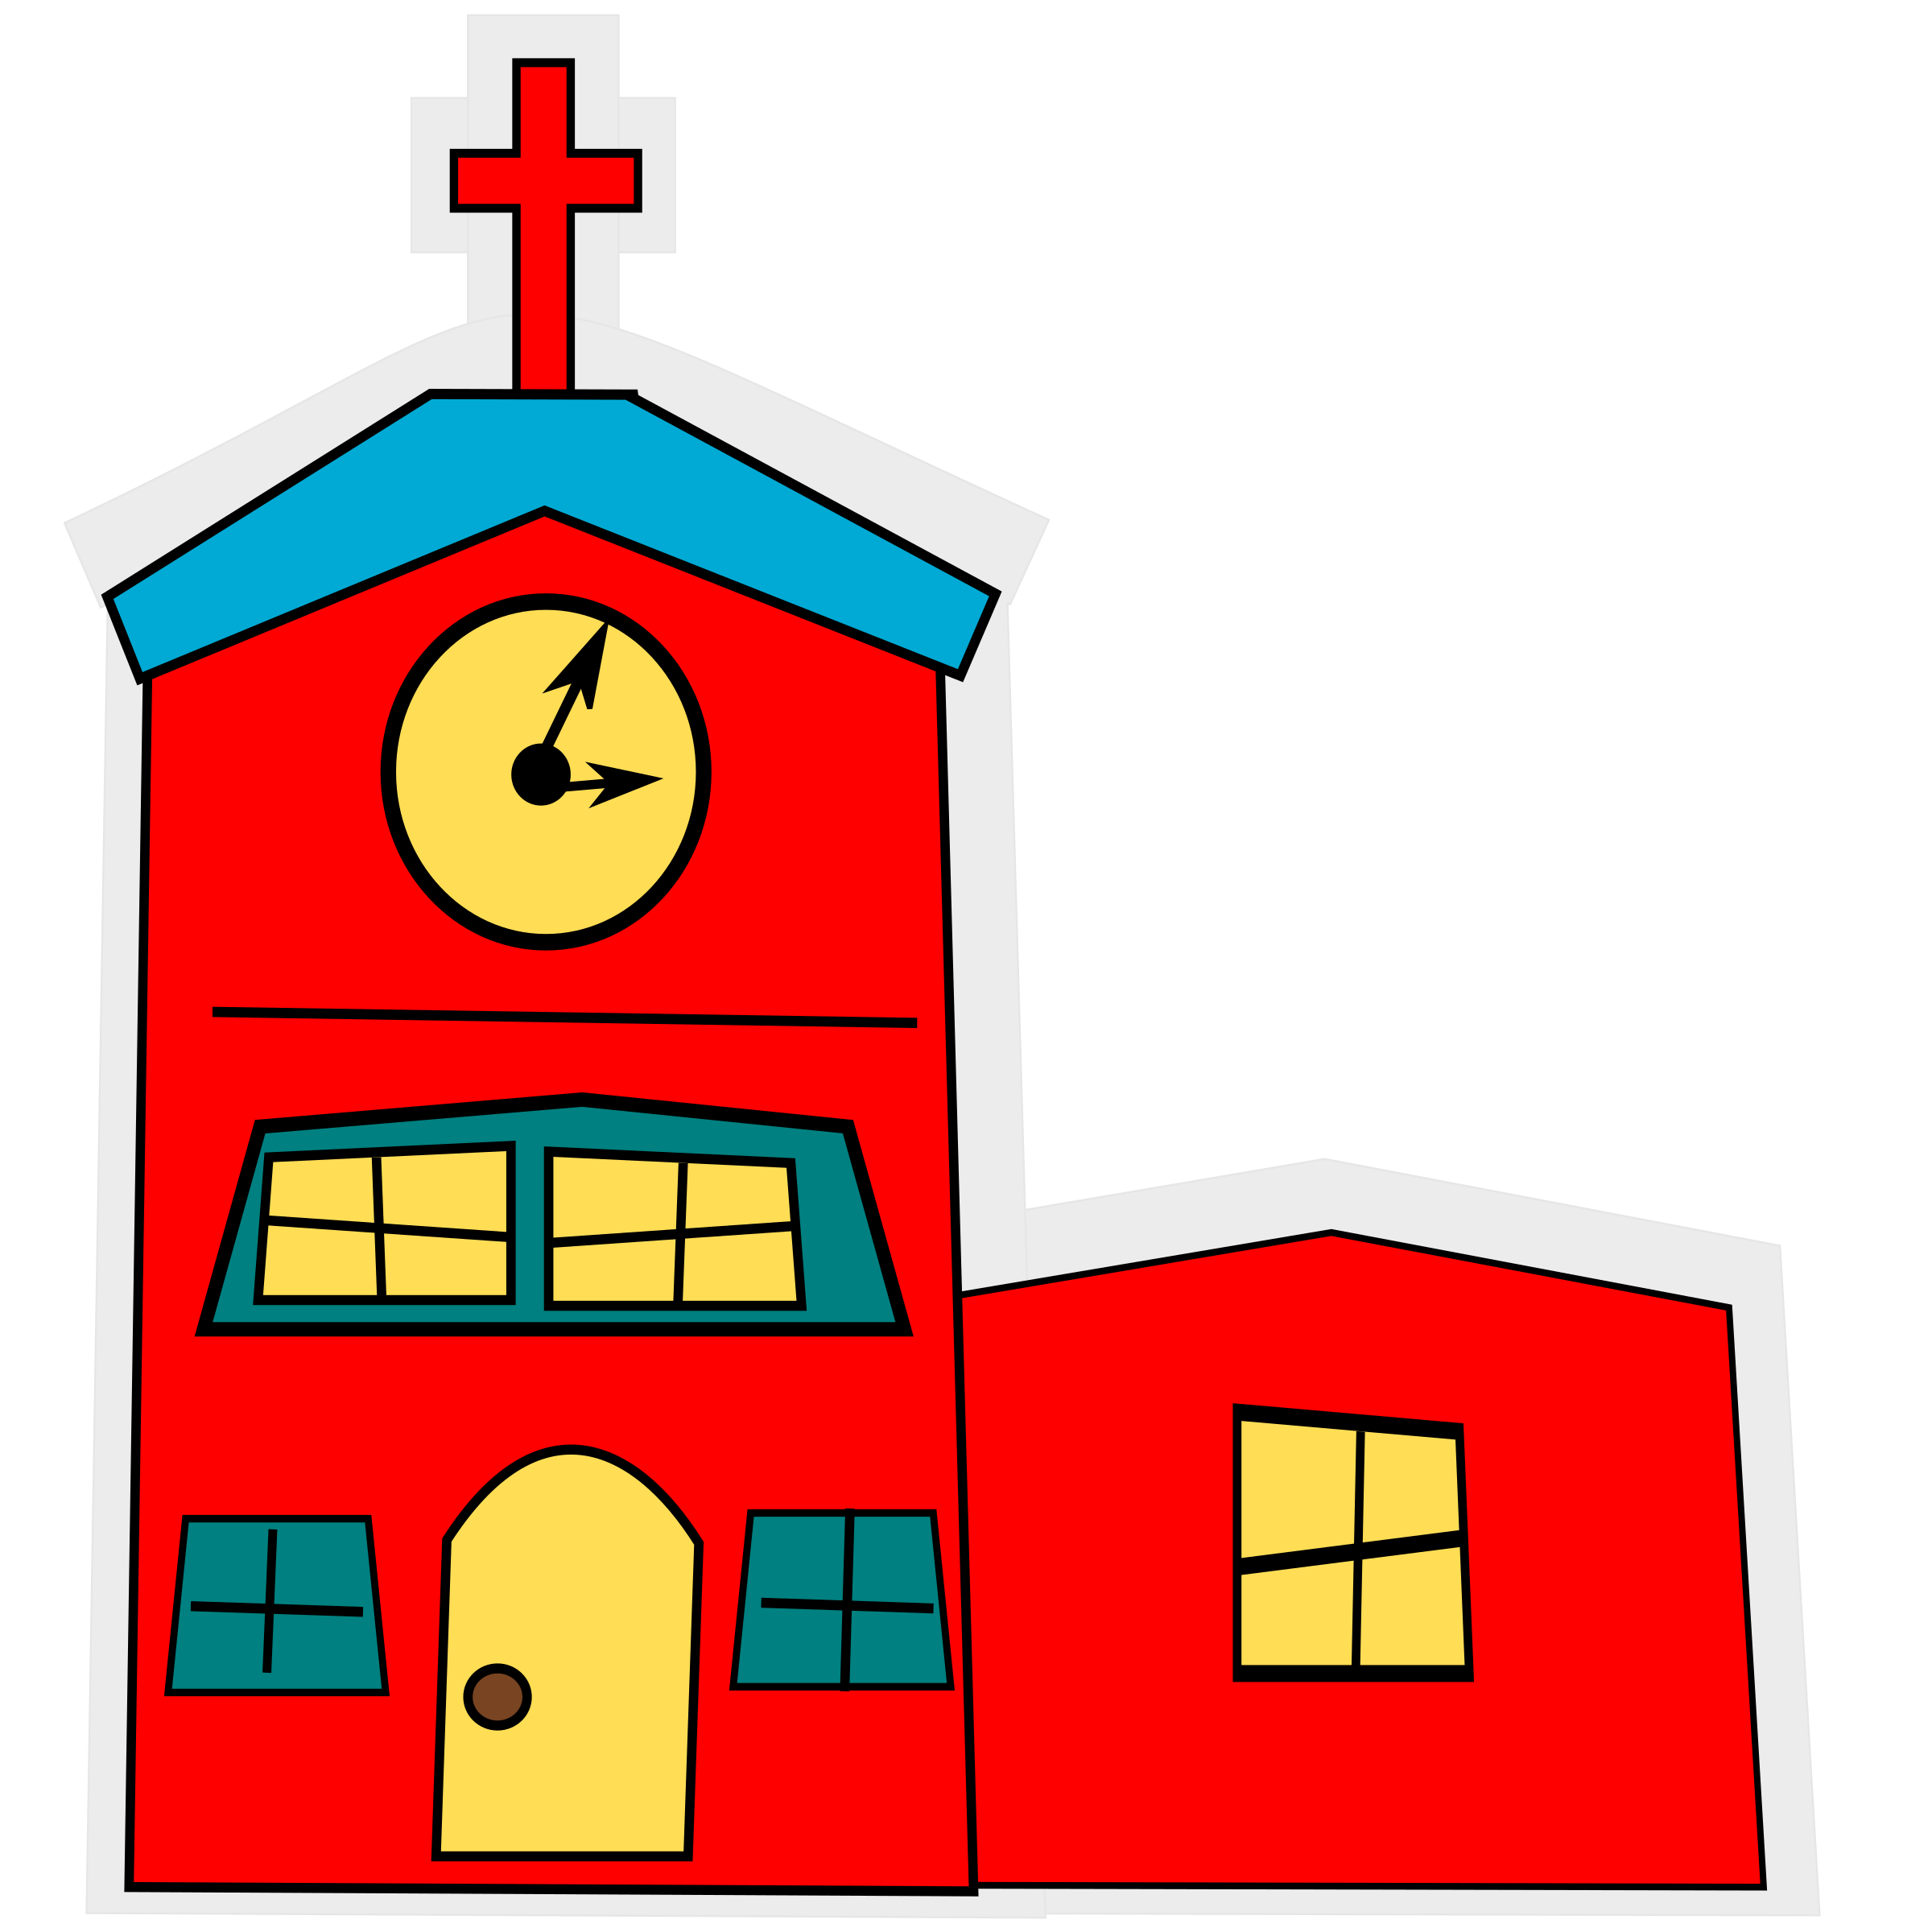 Cartoon cross clipart picture royalty free stock Clipart - cartoon-church with a cross picture royalty free stock